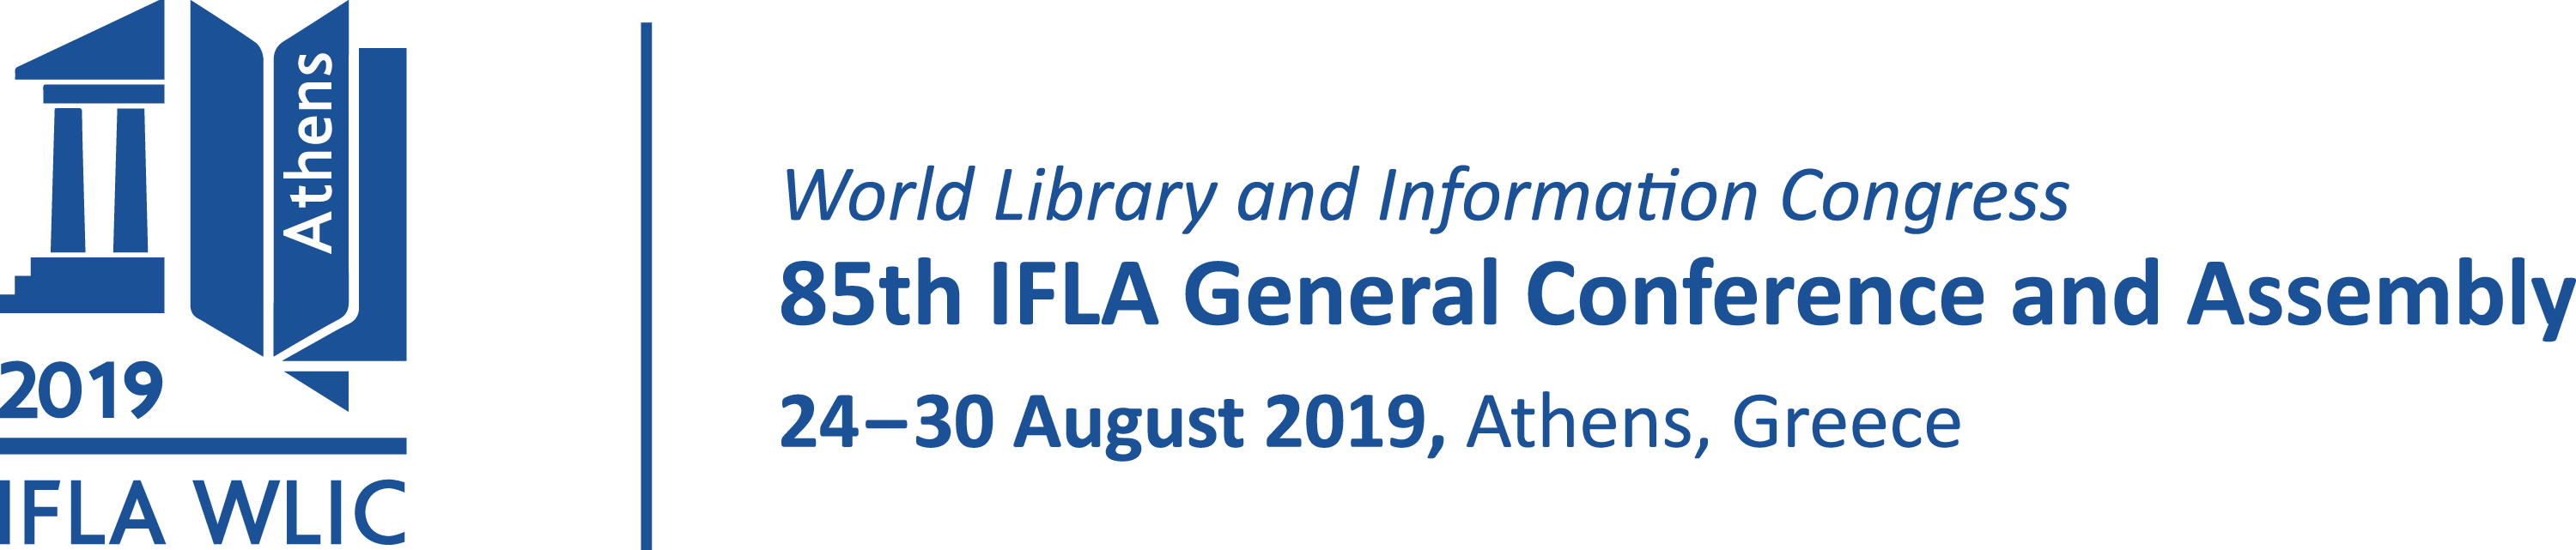 IFLA WLIC 2019 | Athenes | Greece | 24 - 30 August 2019